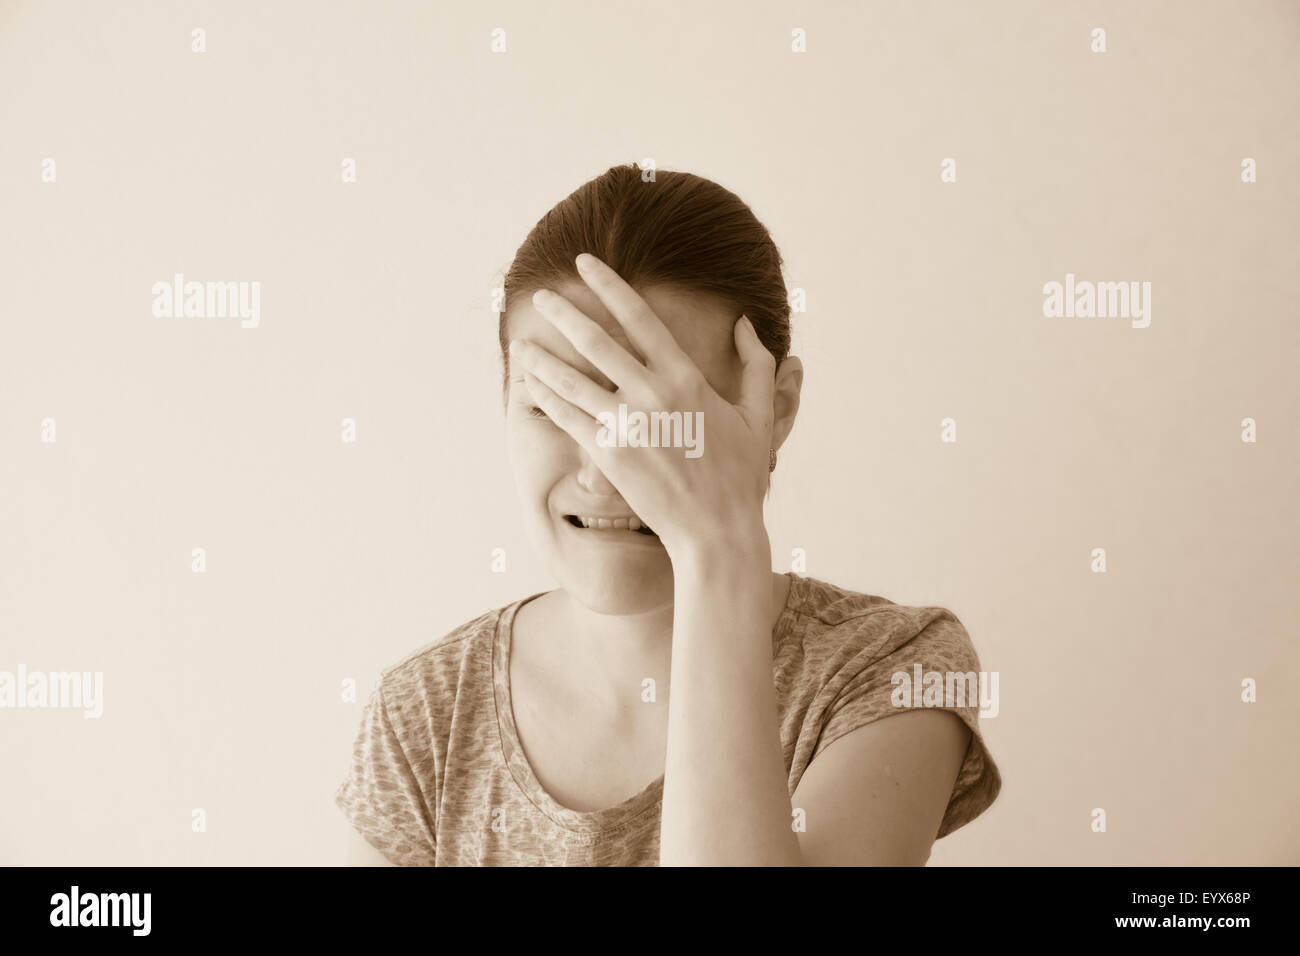 Crying depressed sad abuse young woman, dramatic portrait - Stock Image